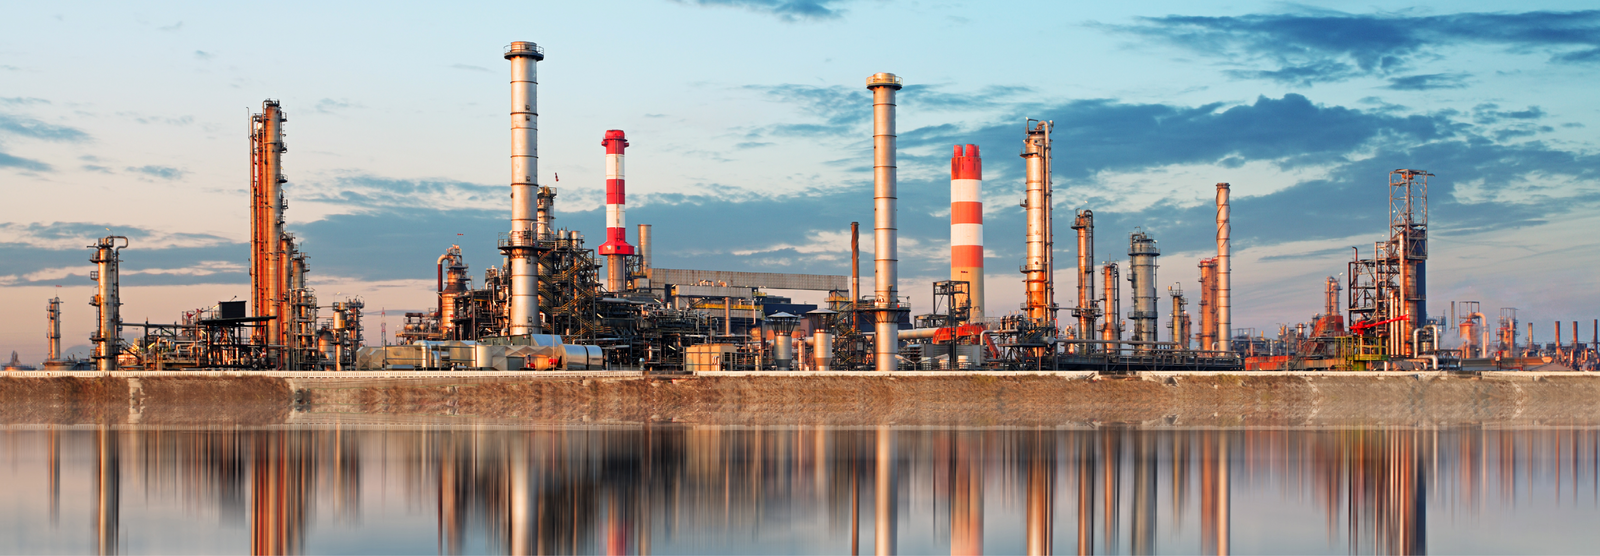 Chemical Oil Refinery